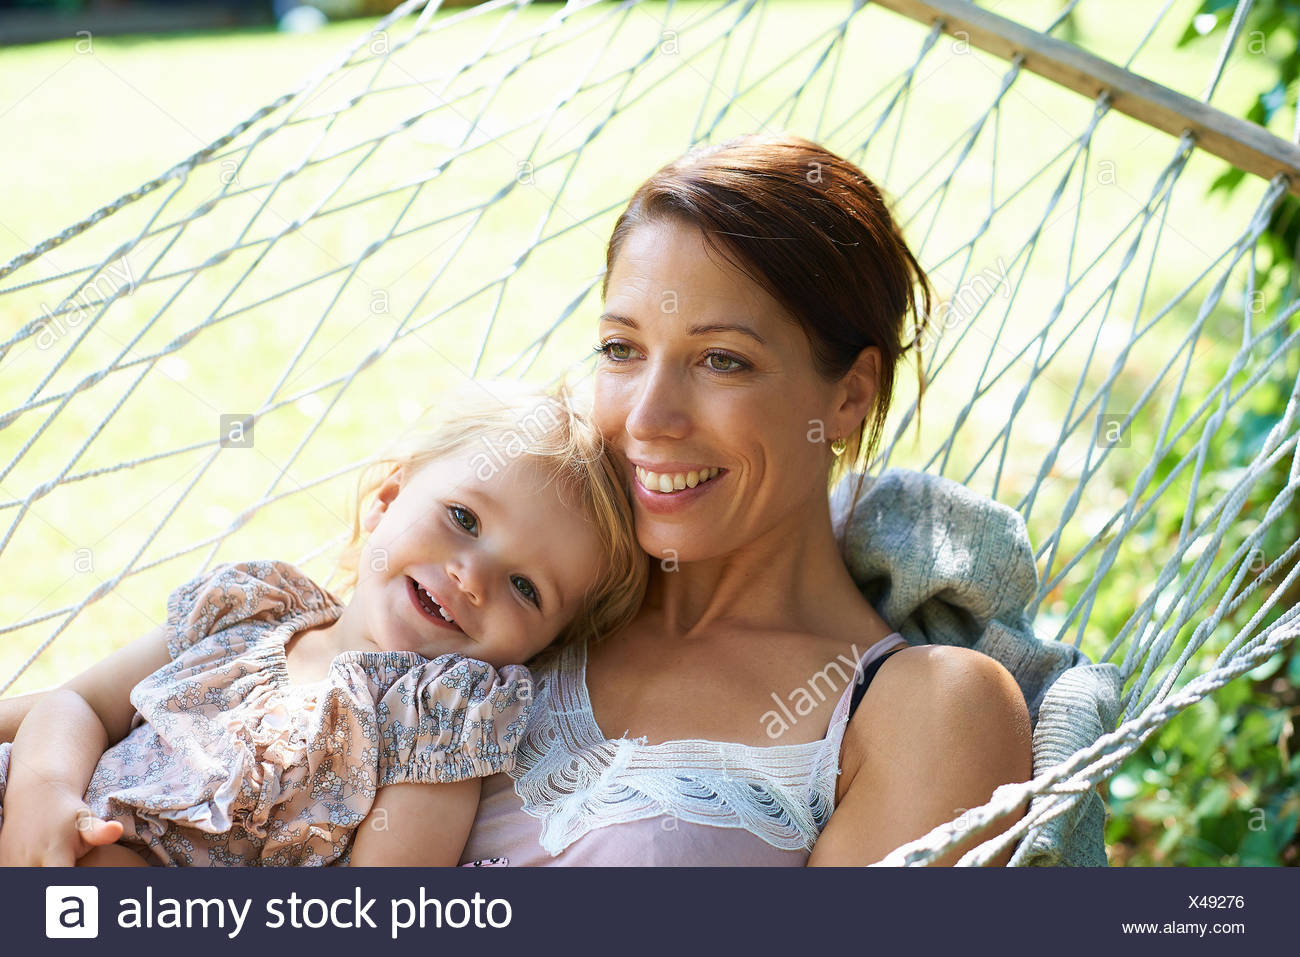 Mid adult mother and toddler daughter reclining in garden hammock - Stock Image